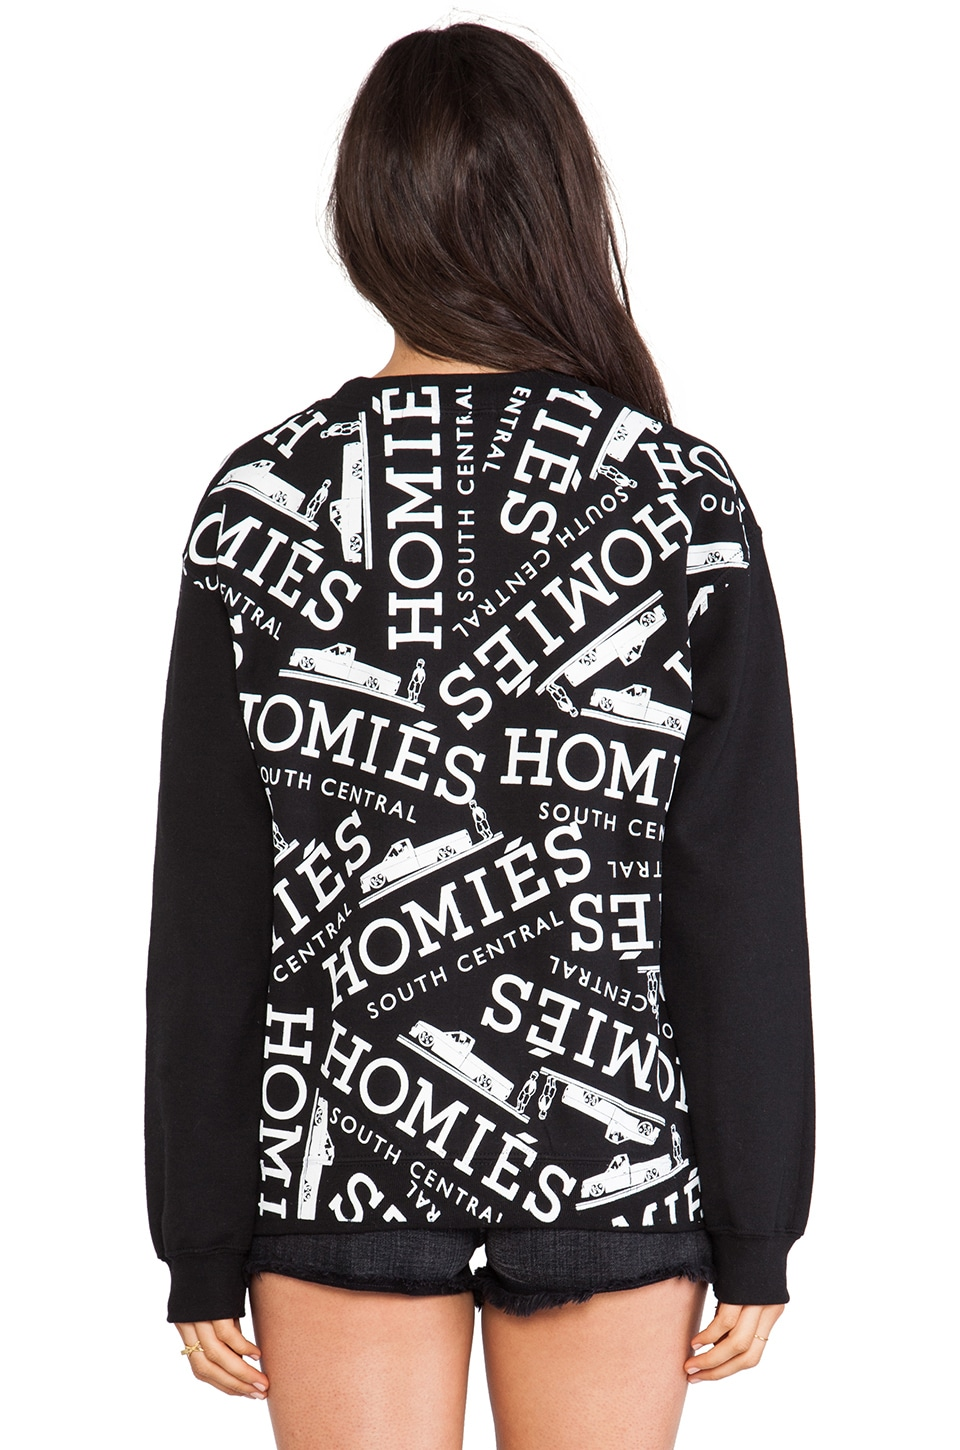 Brian Lichtenberg Homies Graffiti Sweatshirt in Black/White